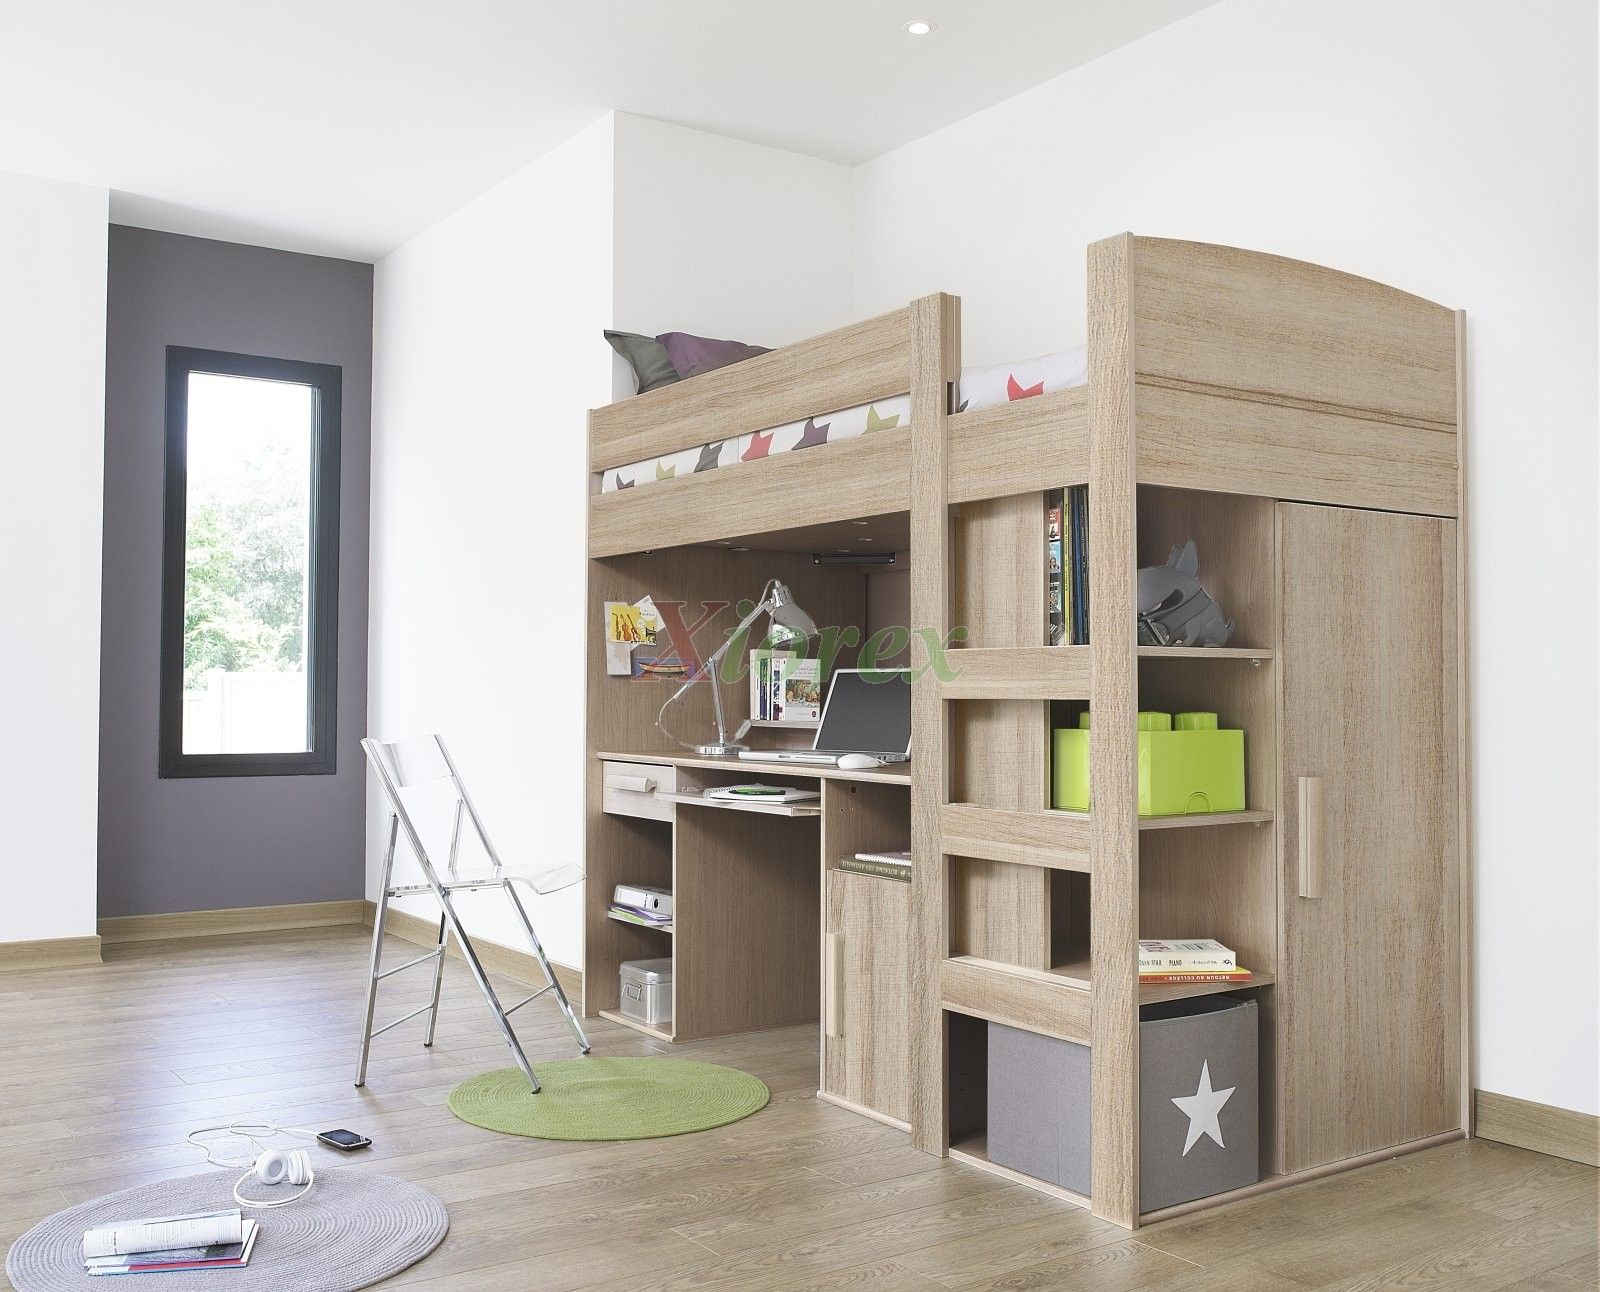 Bunk beds with desk and closet - Montana Loft Beds With Desk And Closet Underneath Are Gami Brand Loft Beds In White Ash